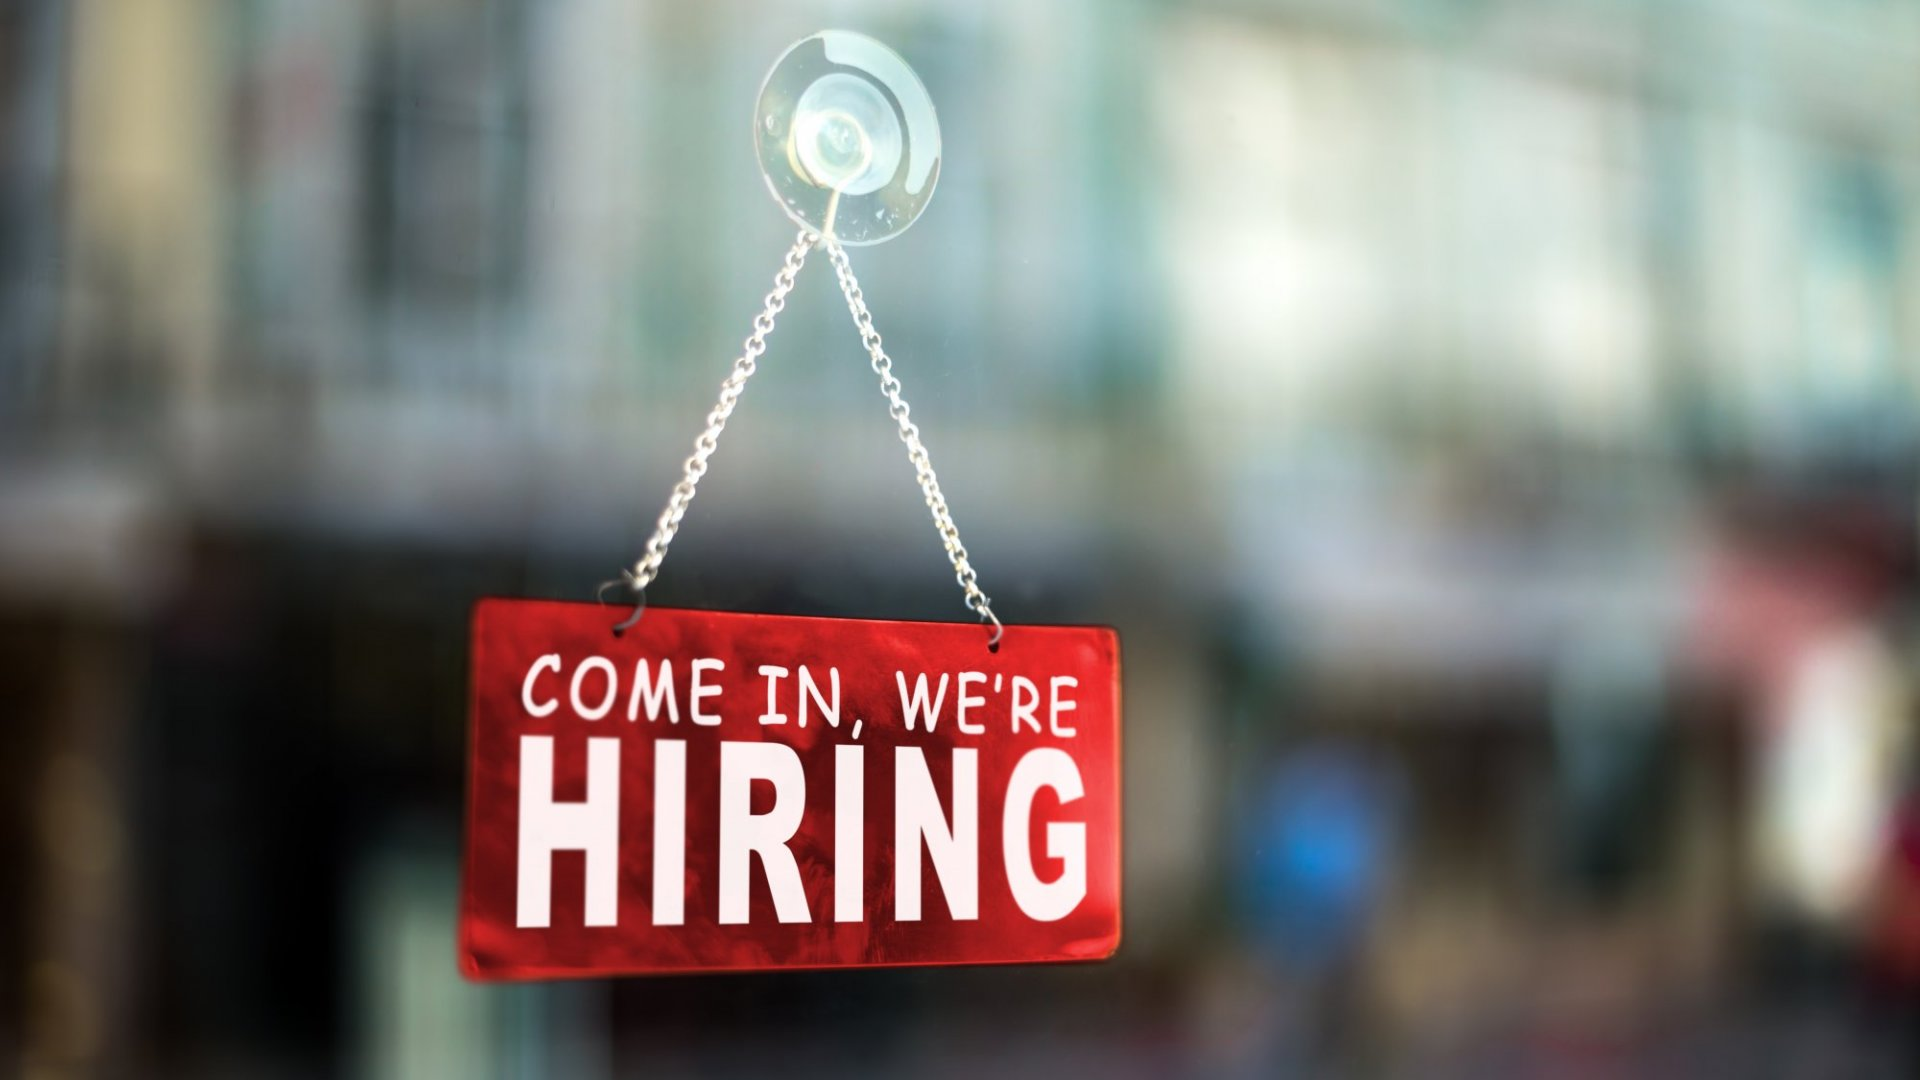 The Top 4 Hiring Challenges Small Businesses are Facing